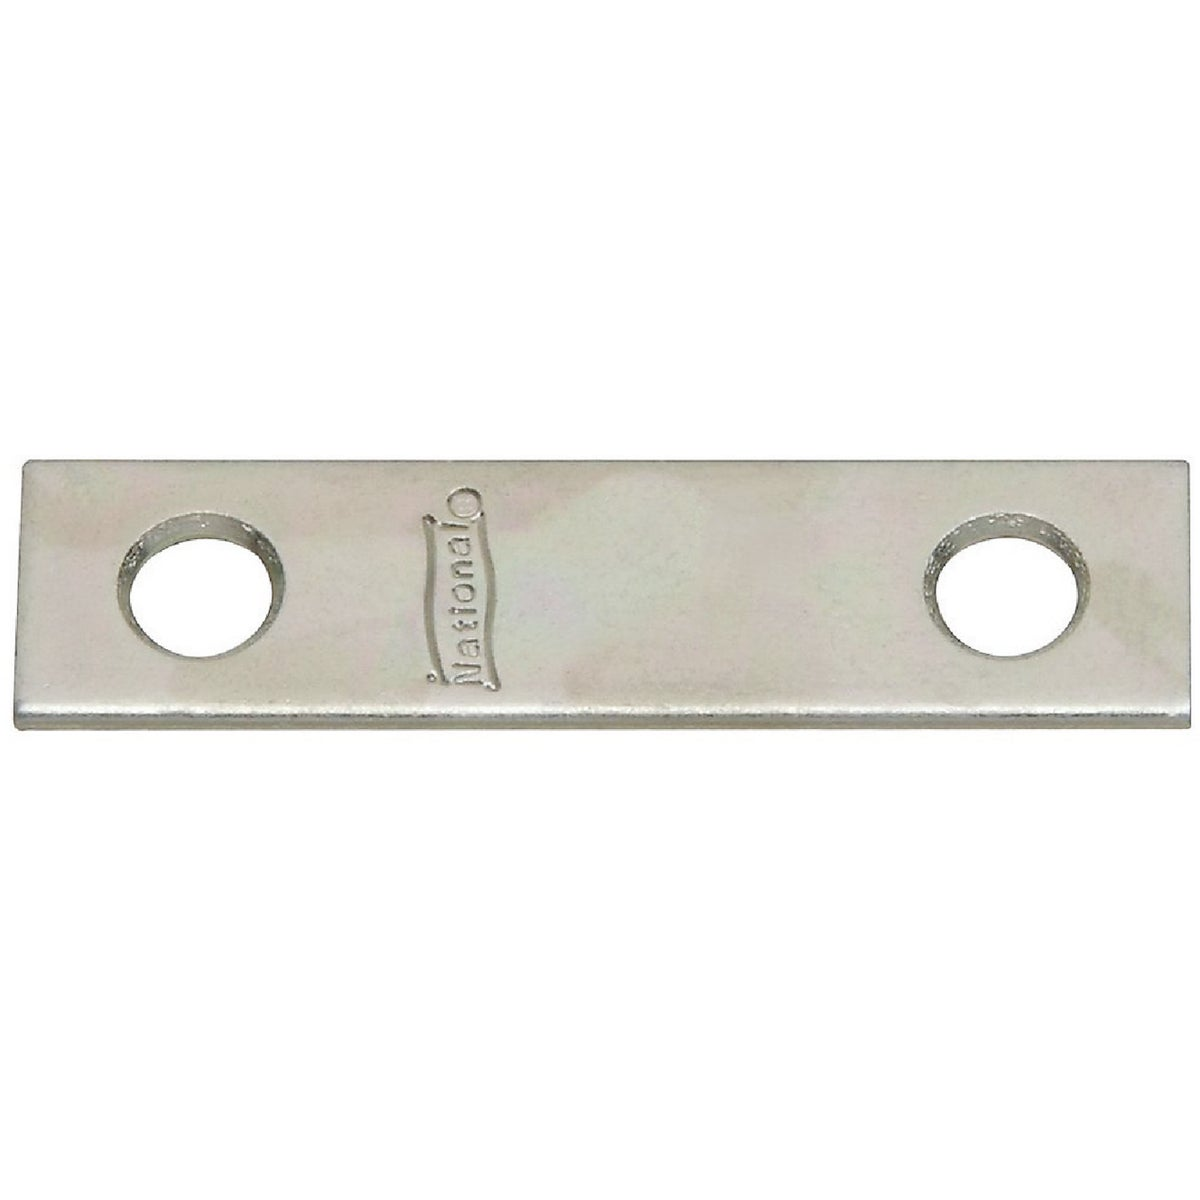 2X1/2 MENDING BRACE - N114314 by National Mfg Co